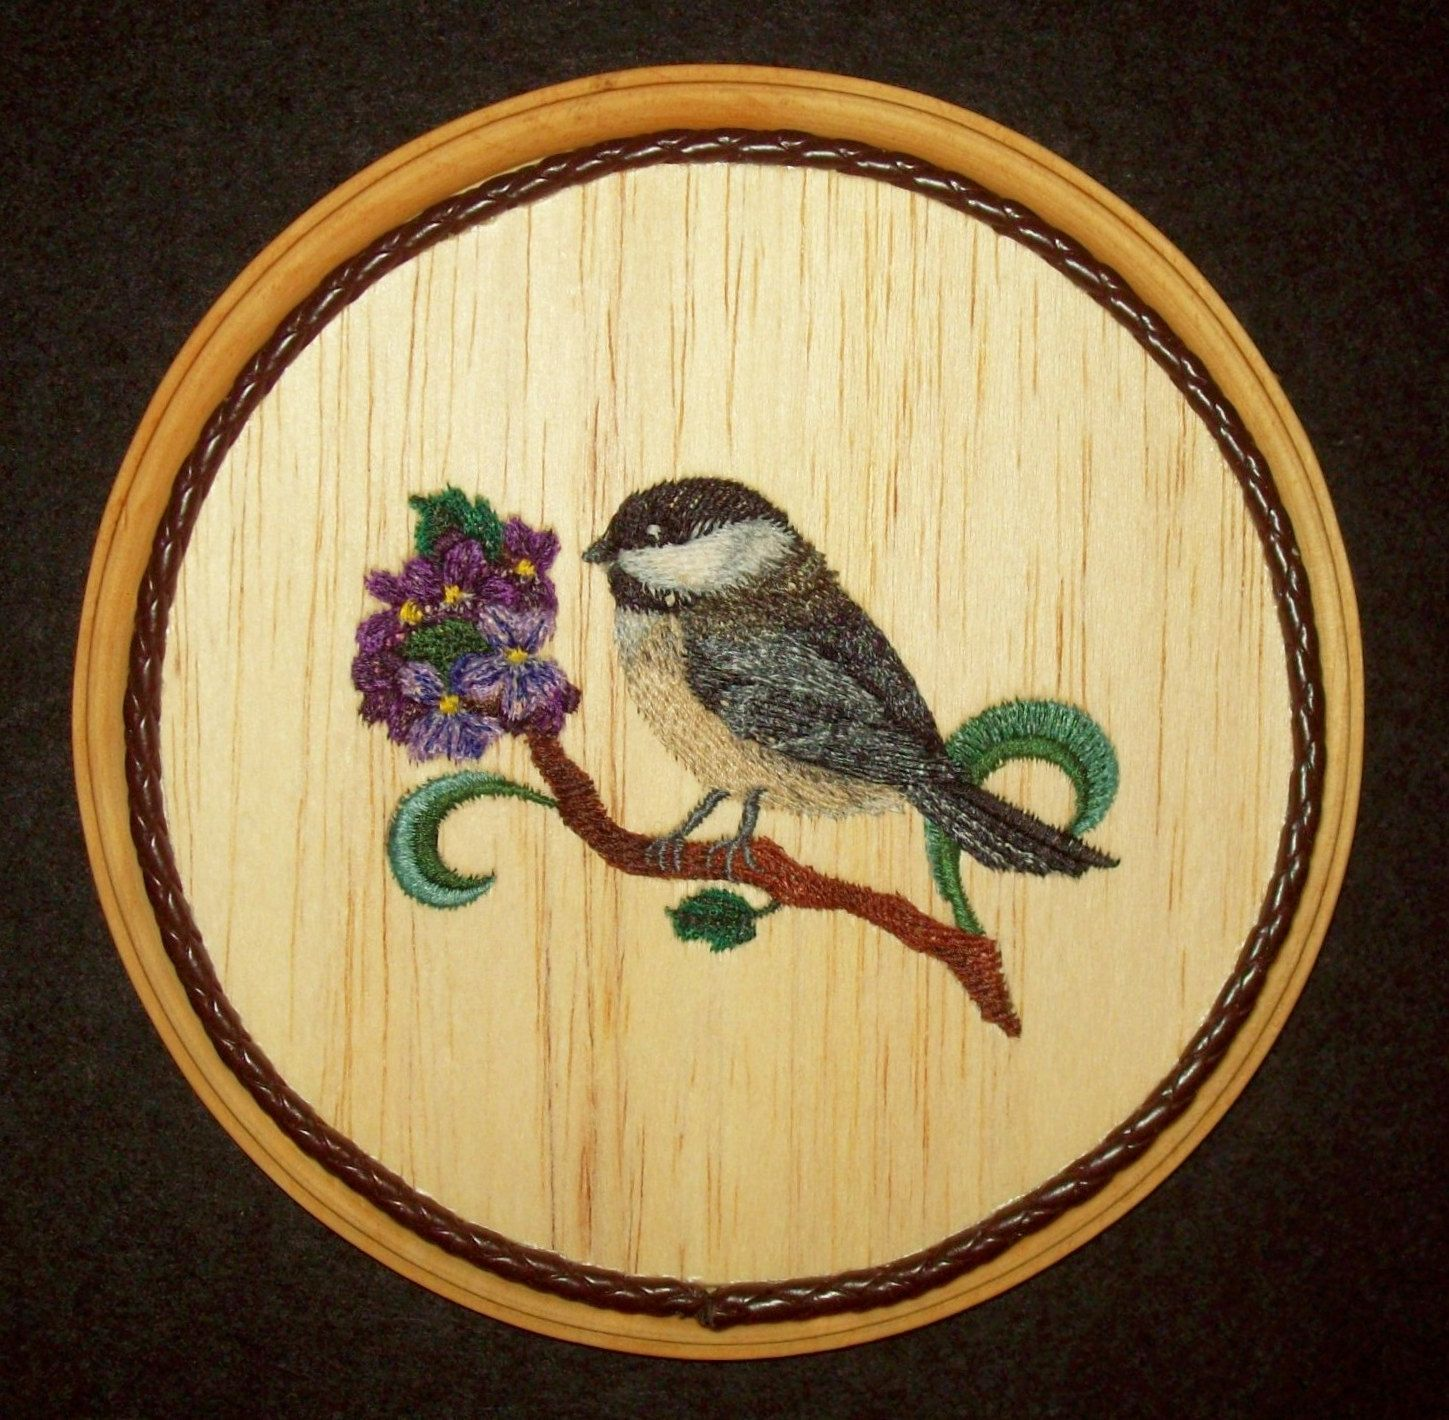 Chickadee & Violets Wall Decorembroidery On Balsa Wood By